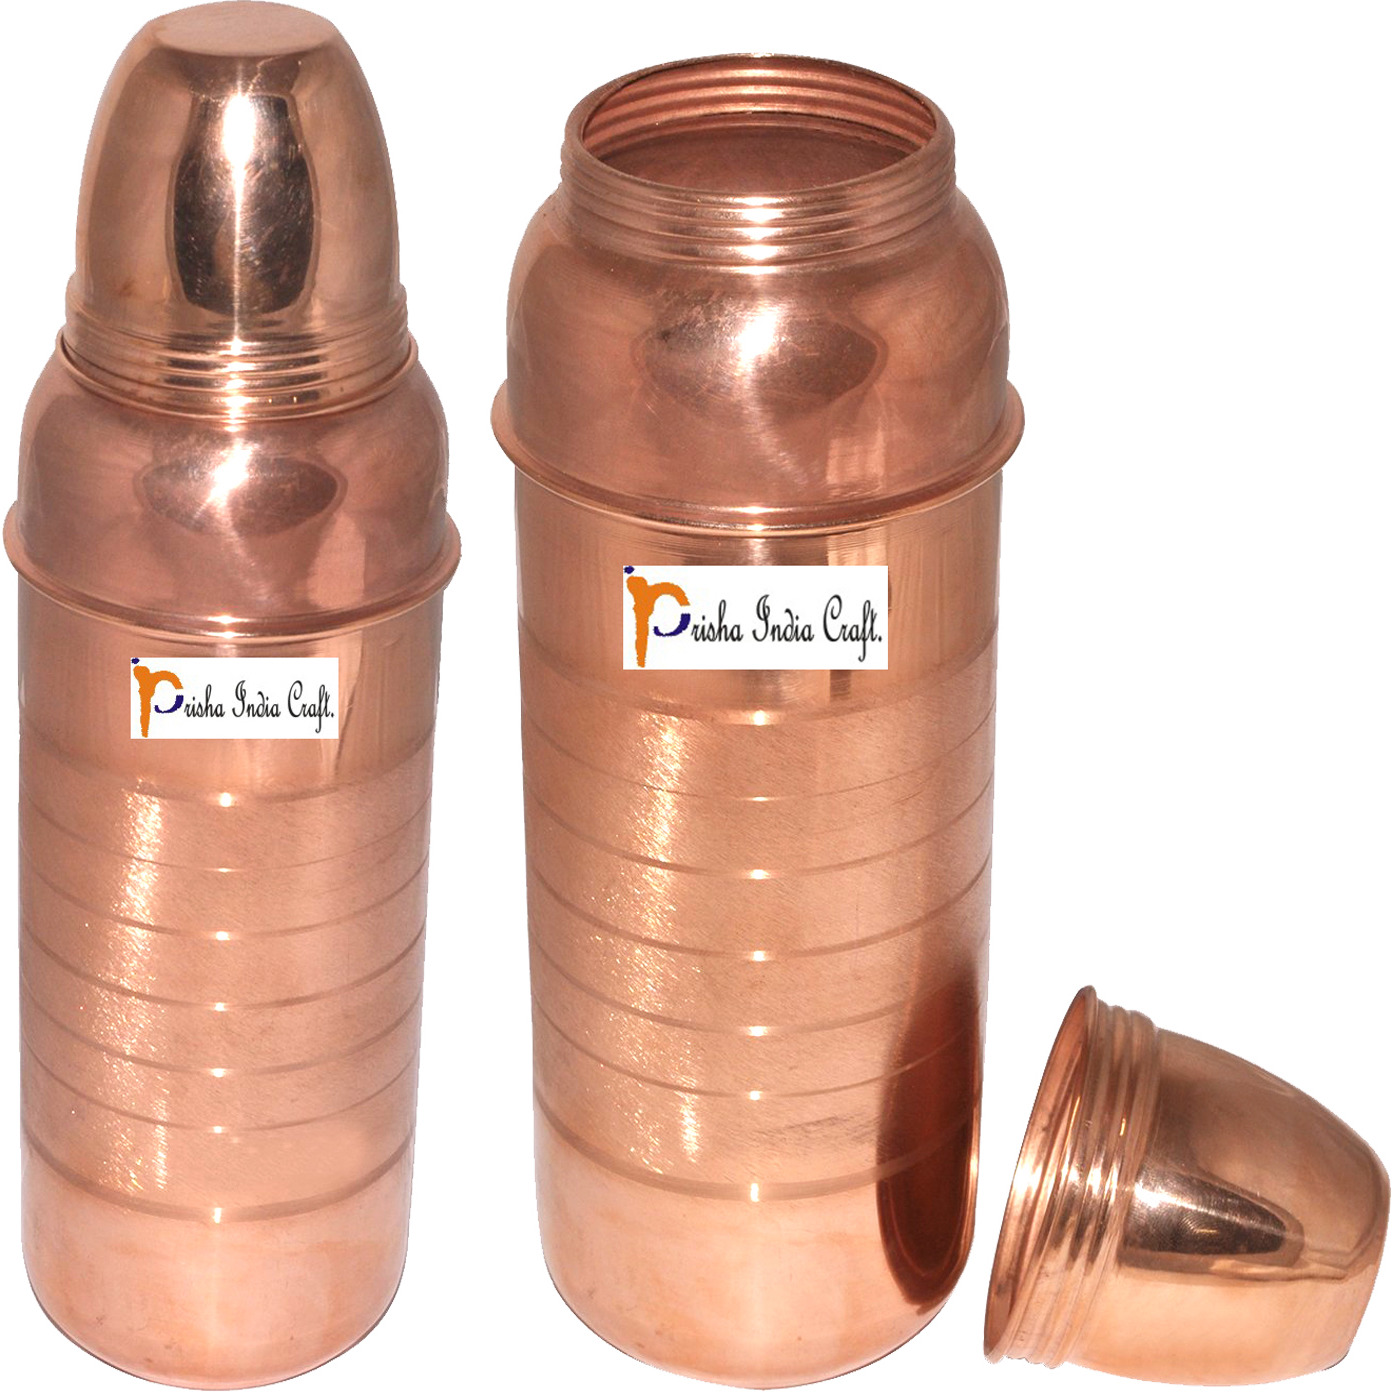 Prisha India Craft B. 800 ML - SET OF 2 - Pure Copper Water Bottle New Design Copper Water Pitcher for the Refrigerator - Sports water Bottles - Christmas Gift with Bottle Cleaning Brush